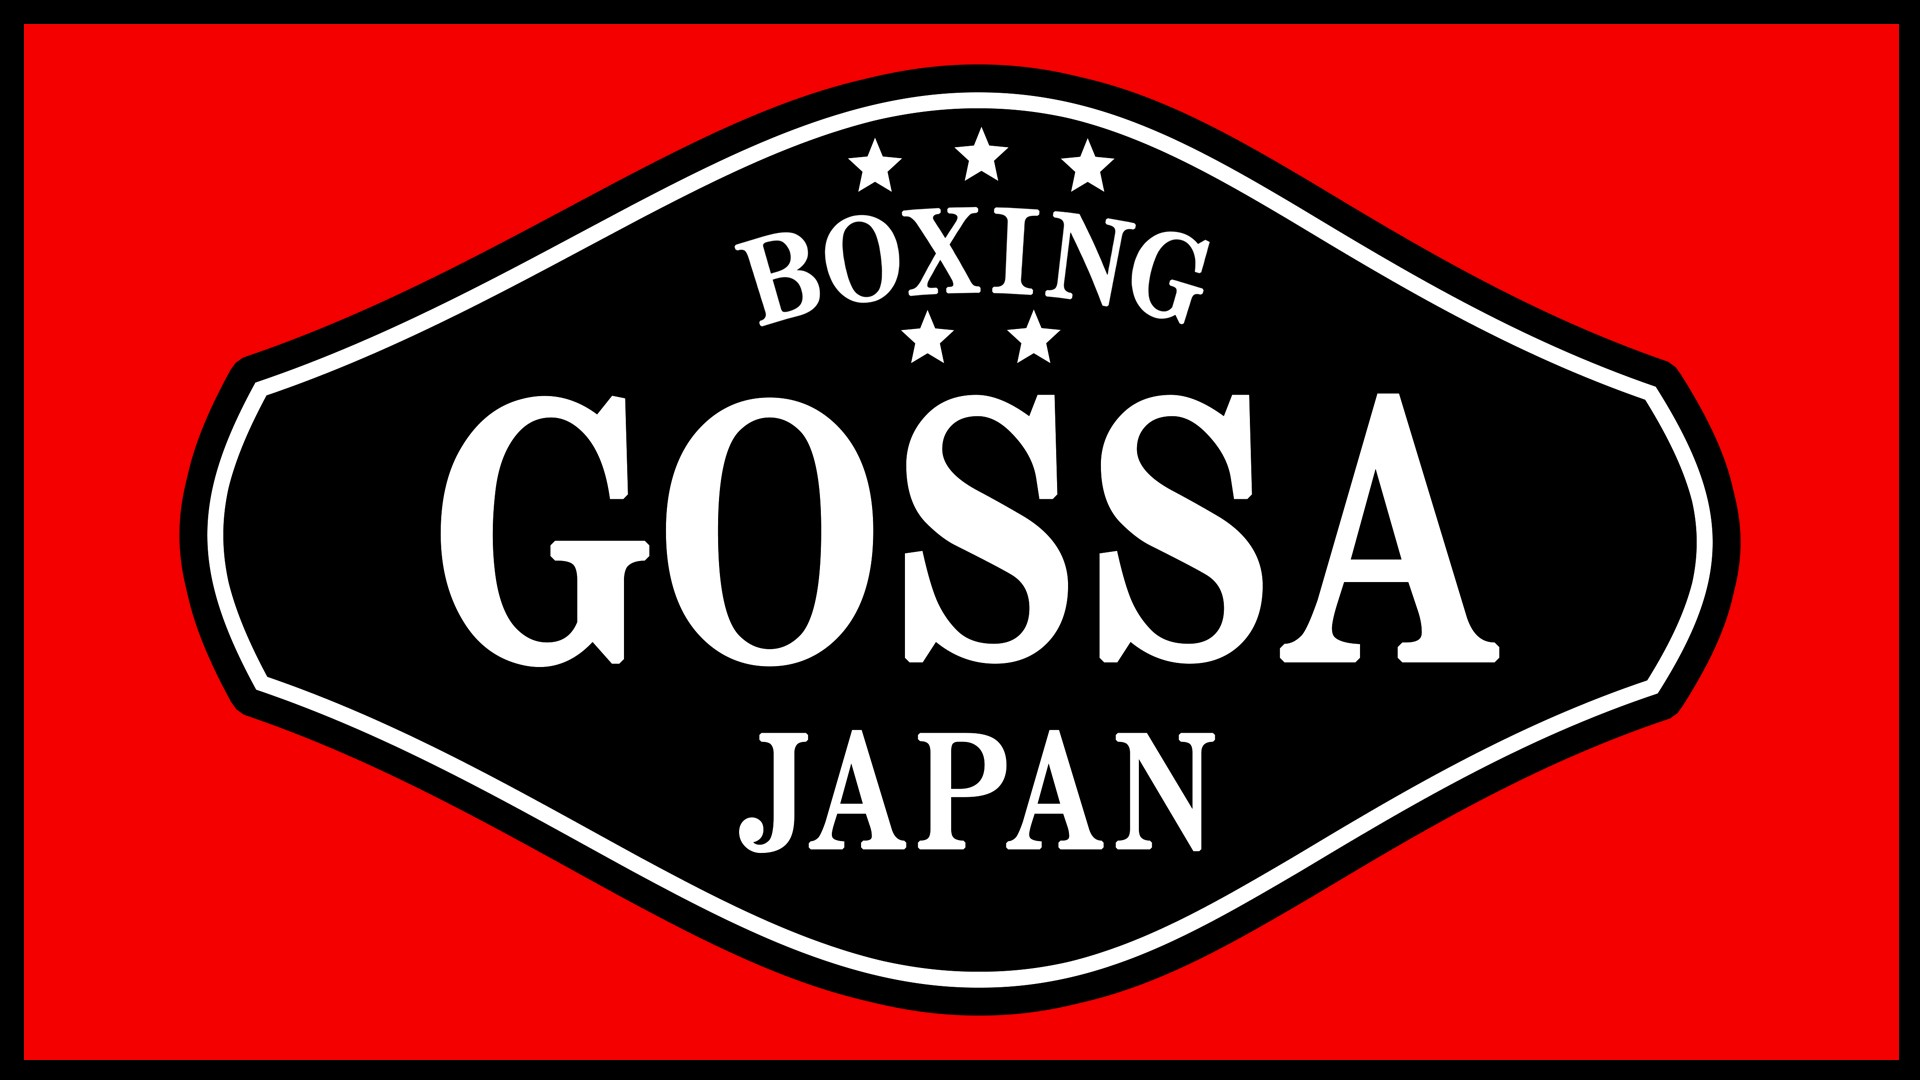 GOSSA(ゴッサ)Boxing goods store